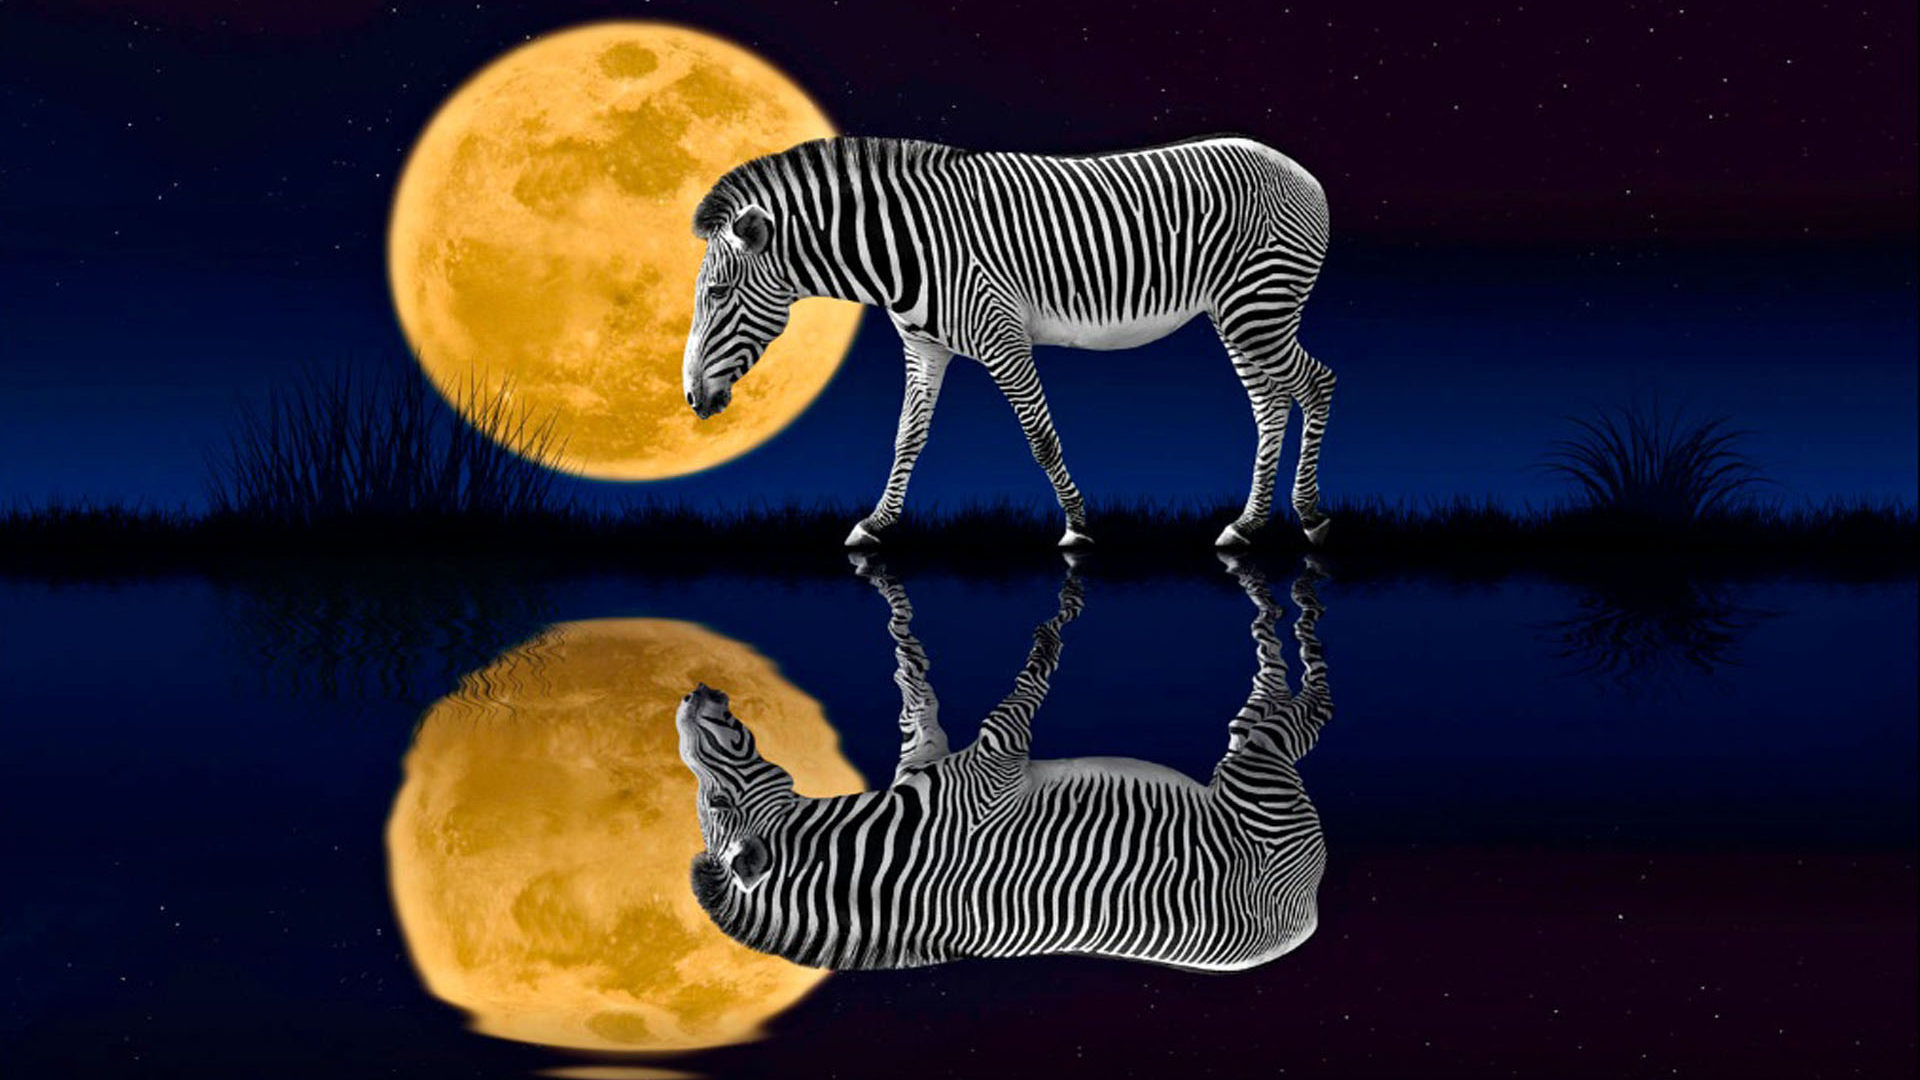 Cute Family Hd Wallpapers Night Zebra Full Moon Reflected In The Water Desktop